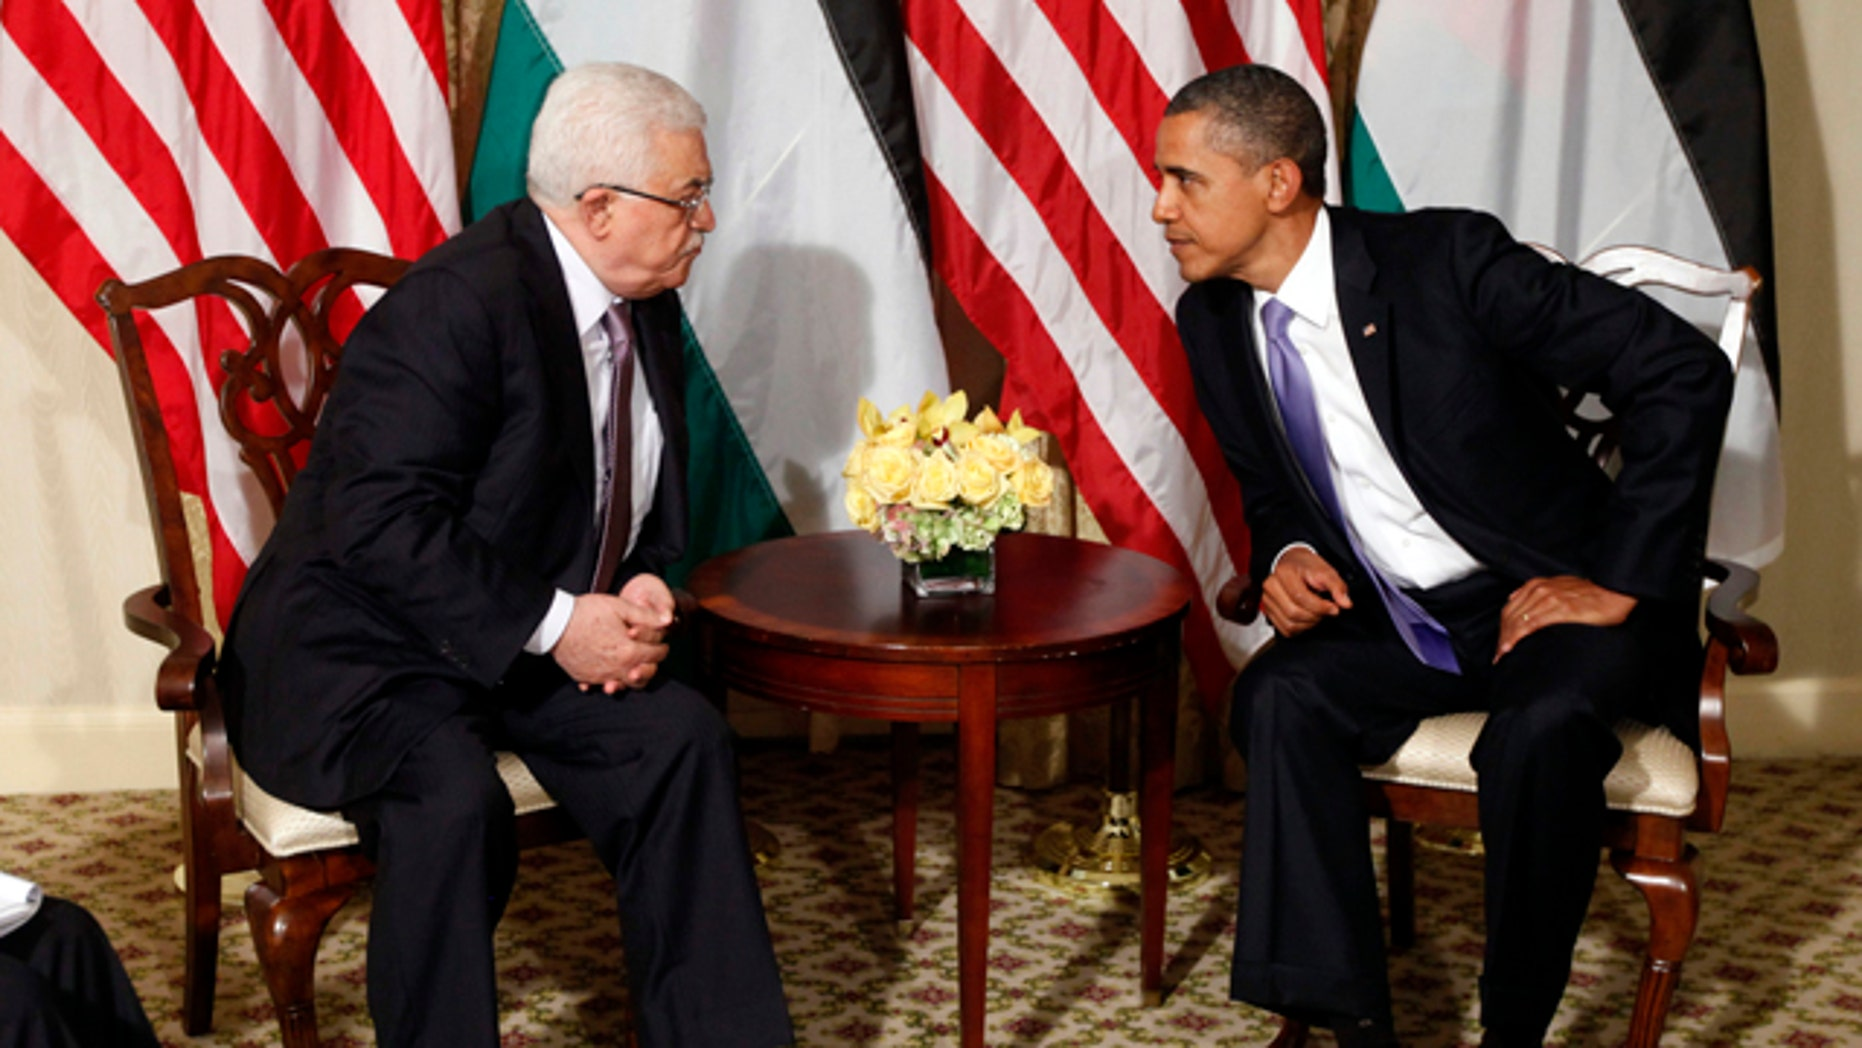 Sept. 21: President Obama talks with Palestinian President Mahmoud Abbas during a meeting in New York.